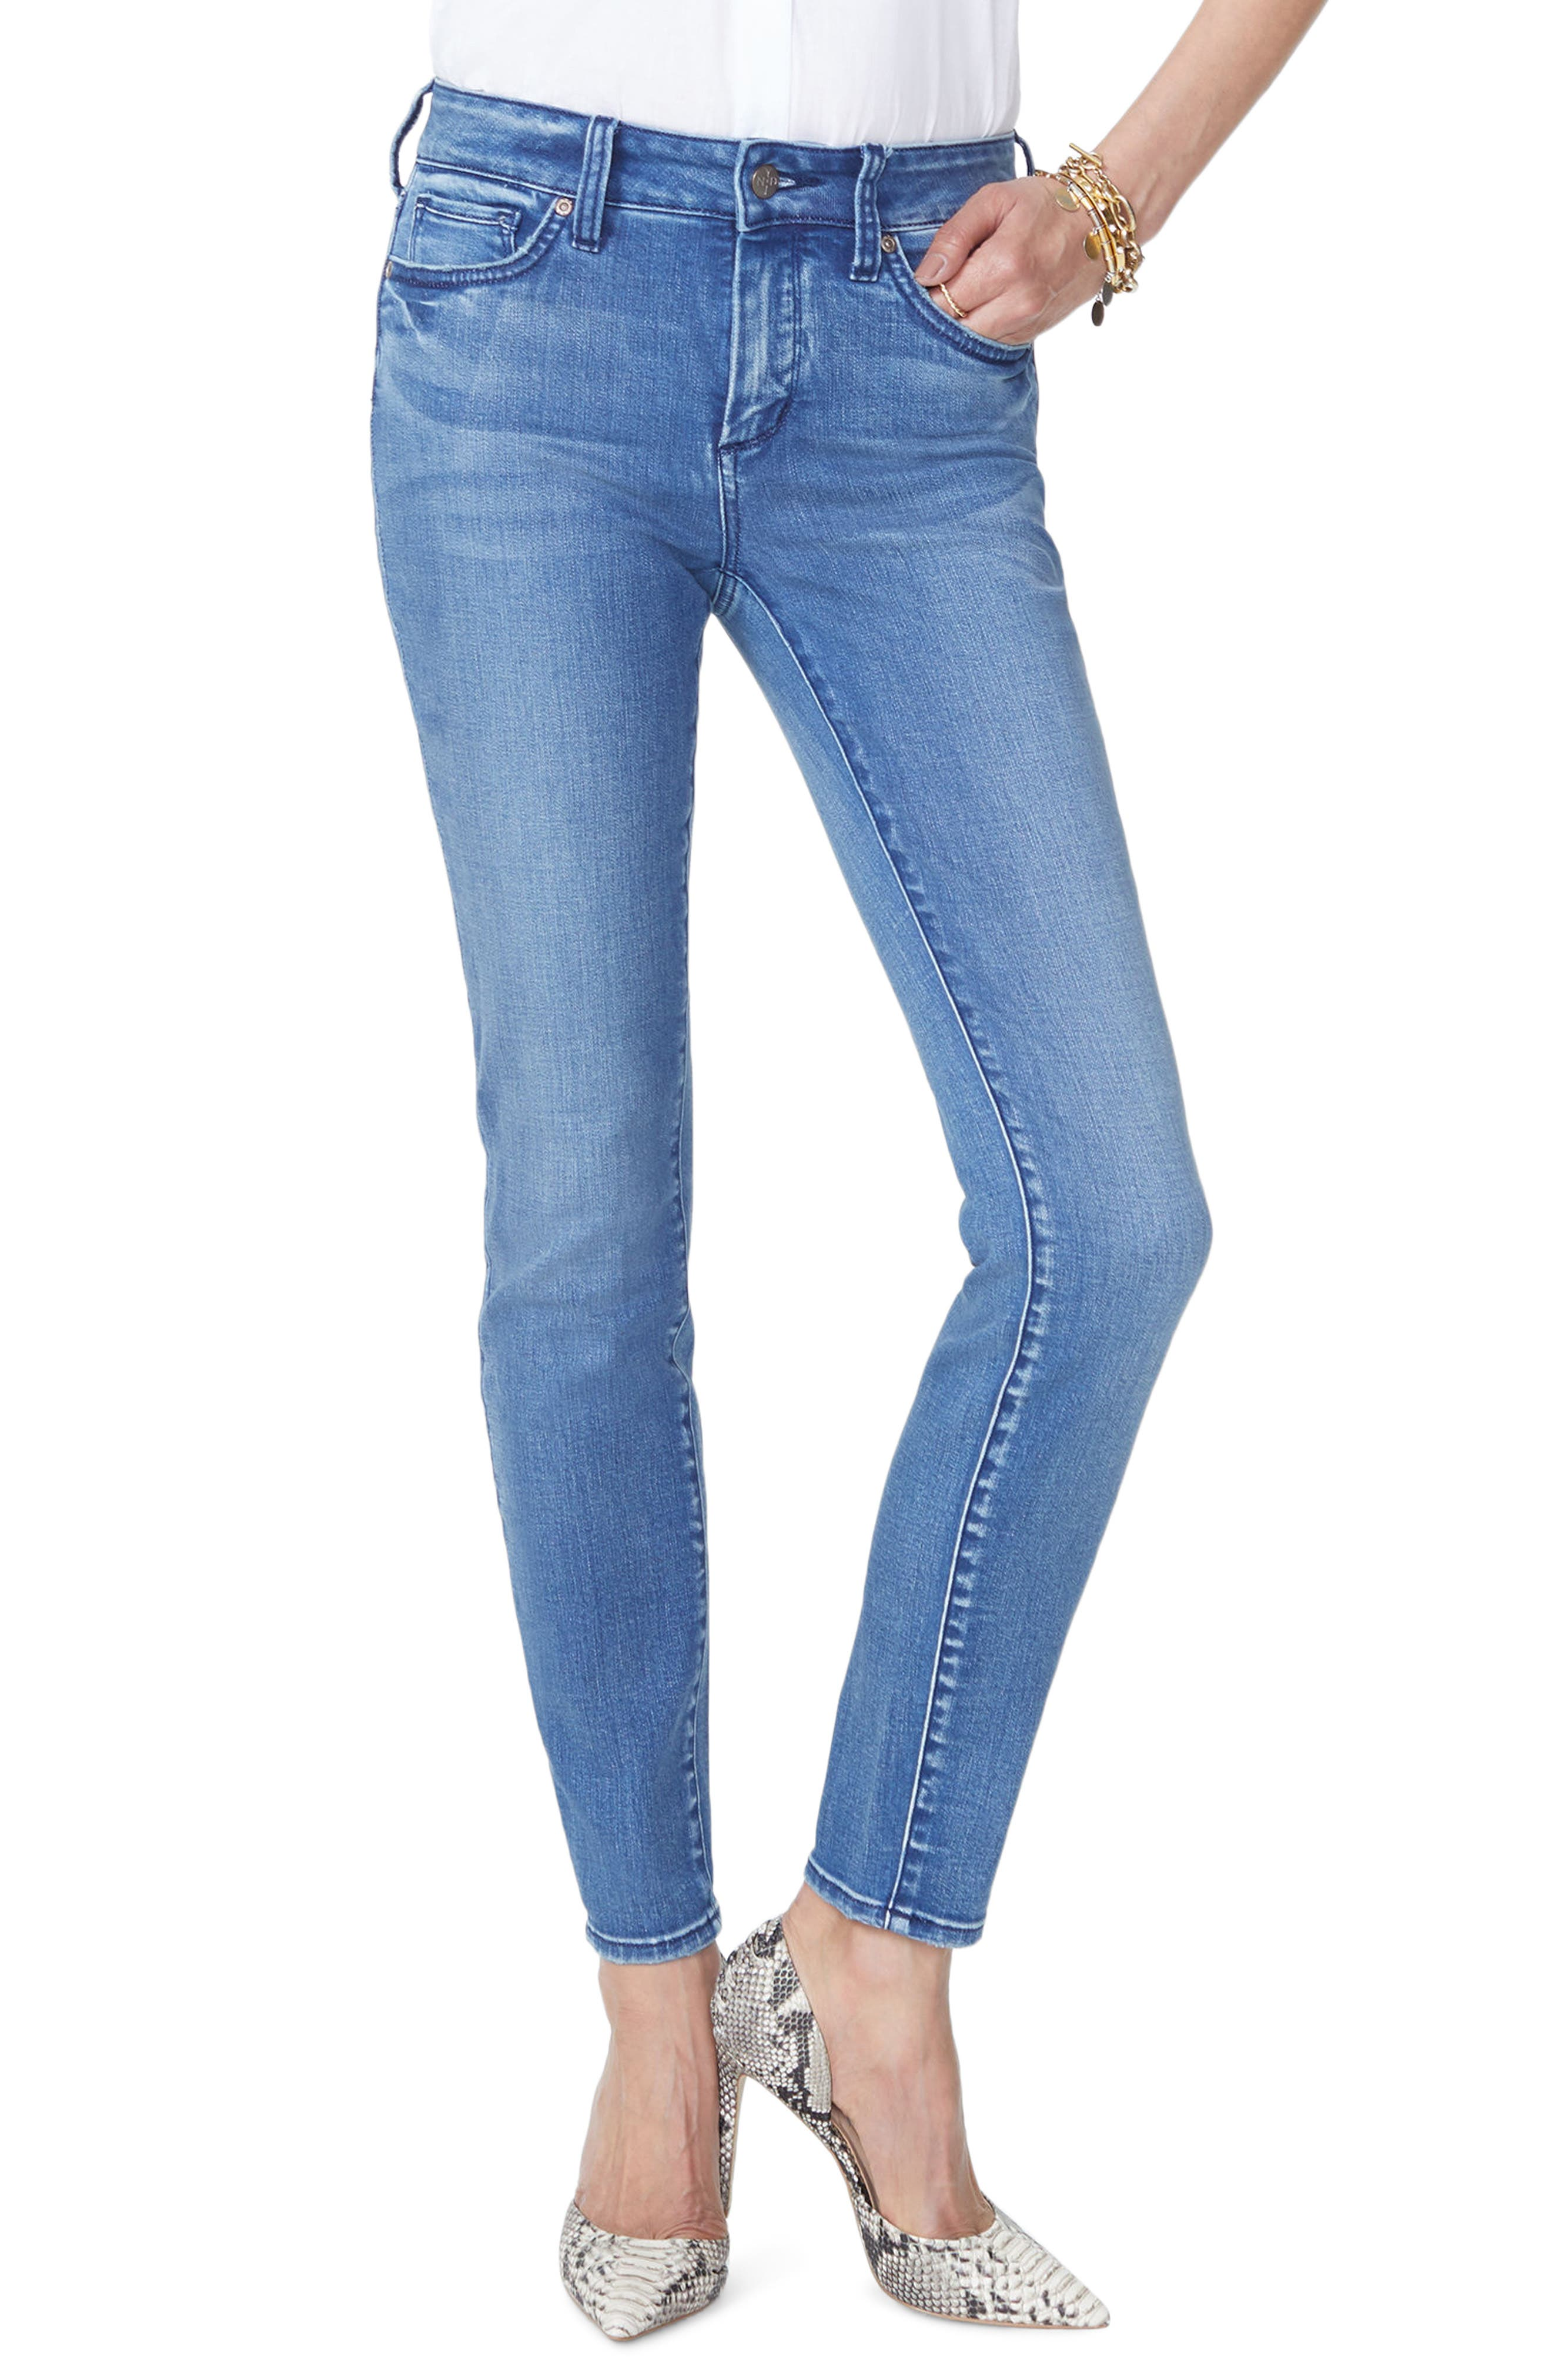 Ami Stretch Skinny Jeans,                             Main thumbnail 1, color,                             Wishful